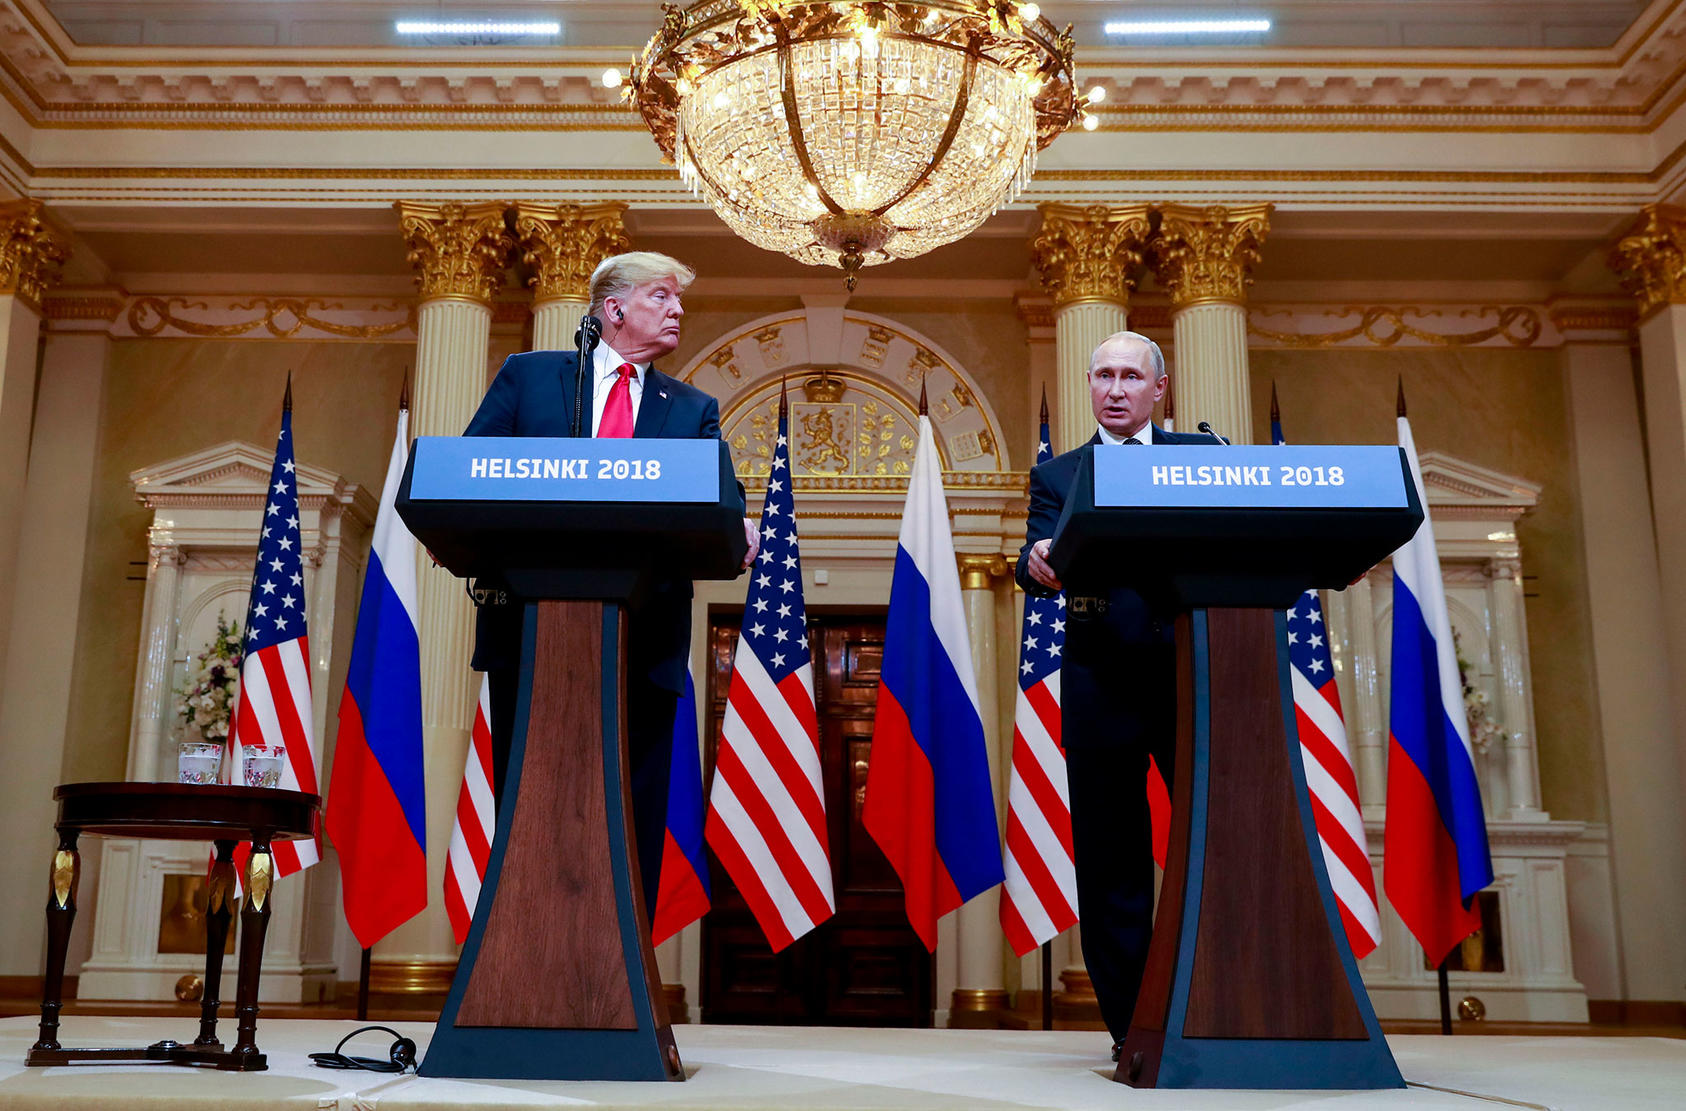 President Donald Trump and President Vladimir Putin of Russia appear at a joint news conference in Helsinki, Finland